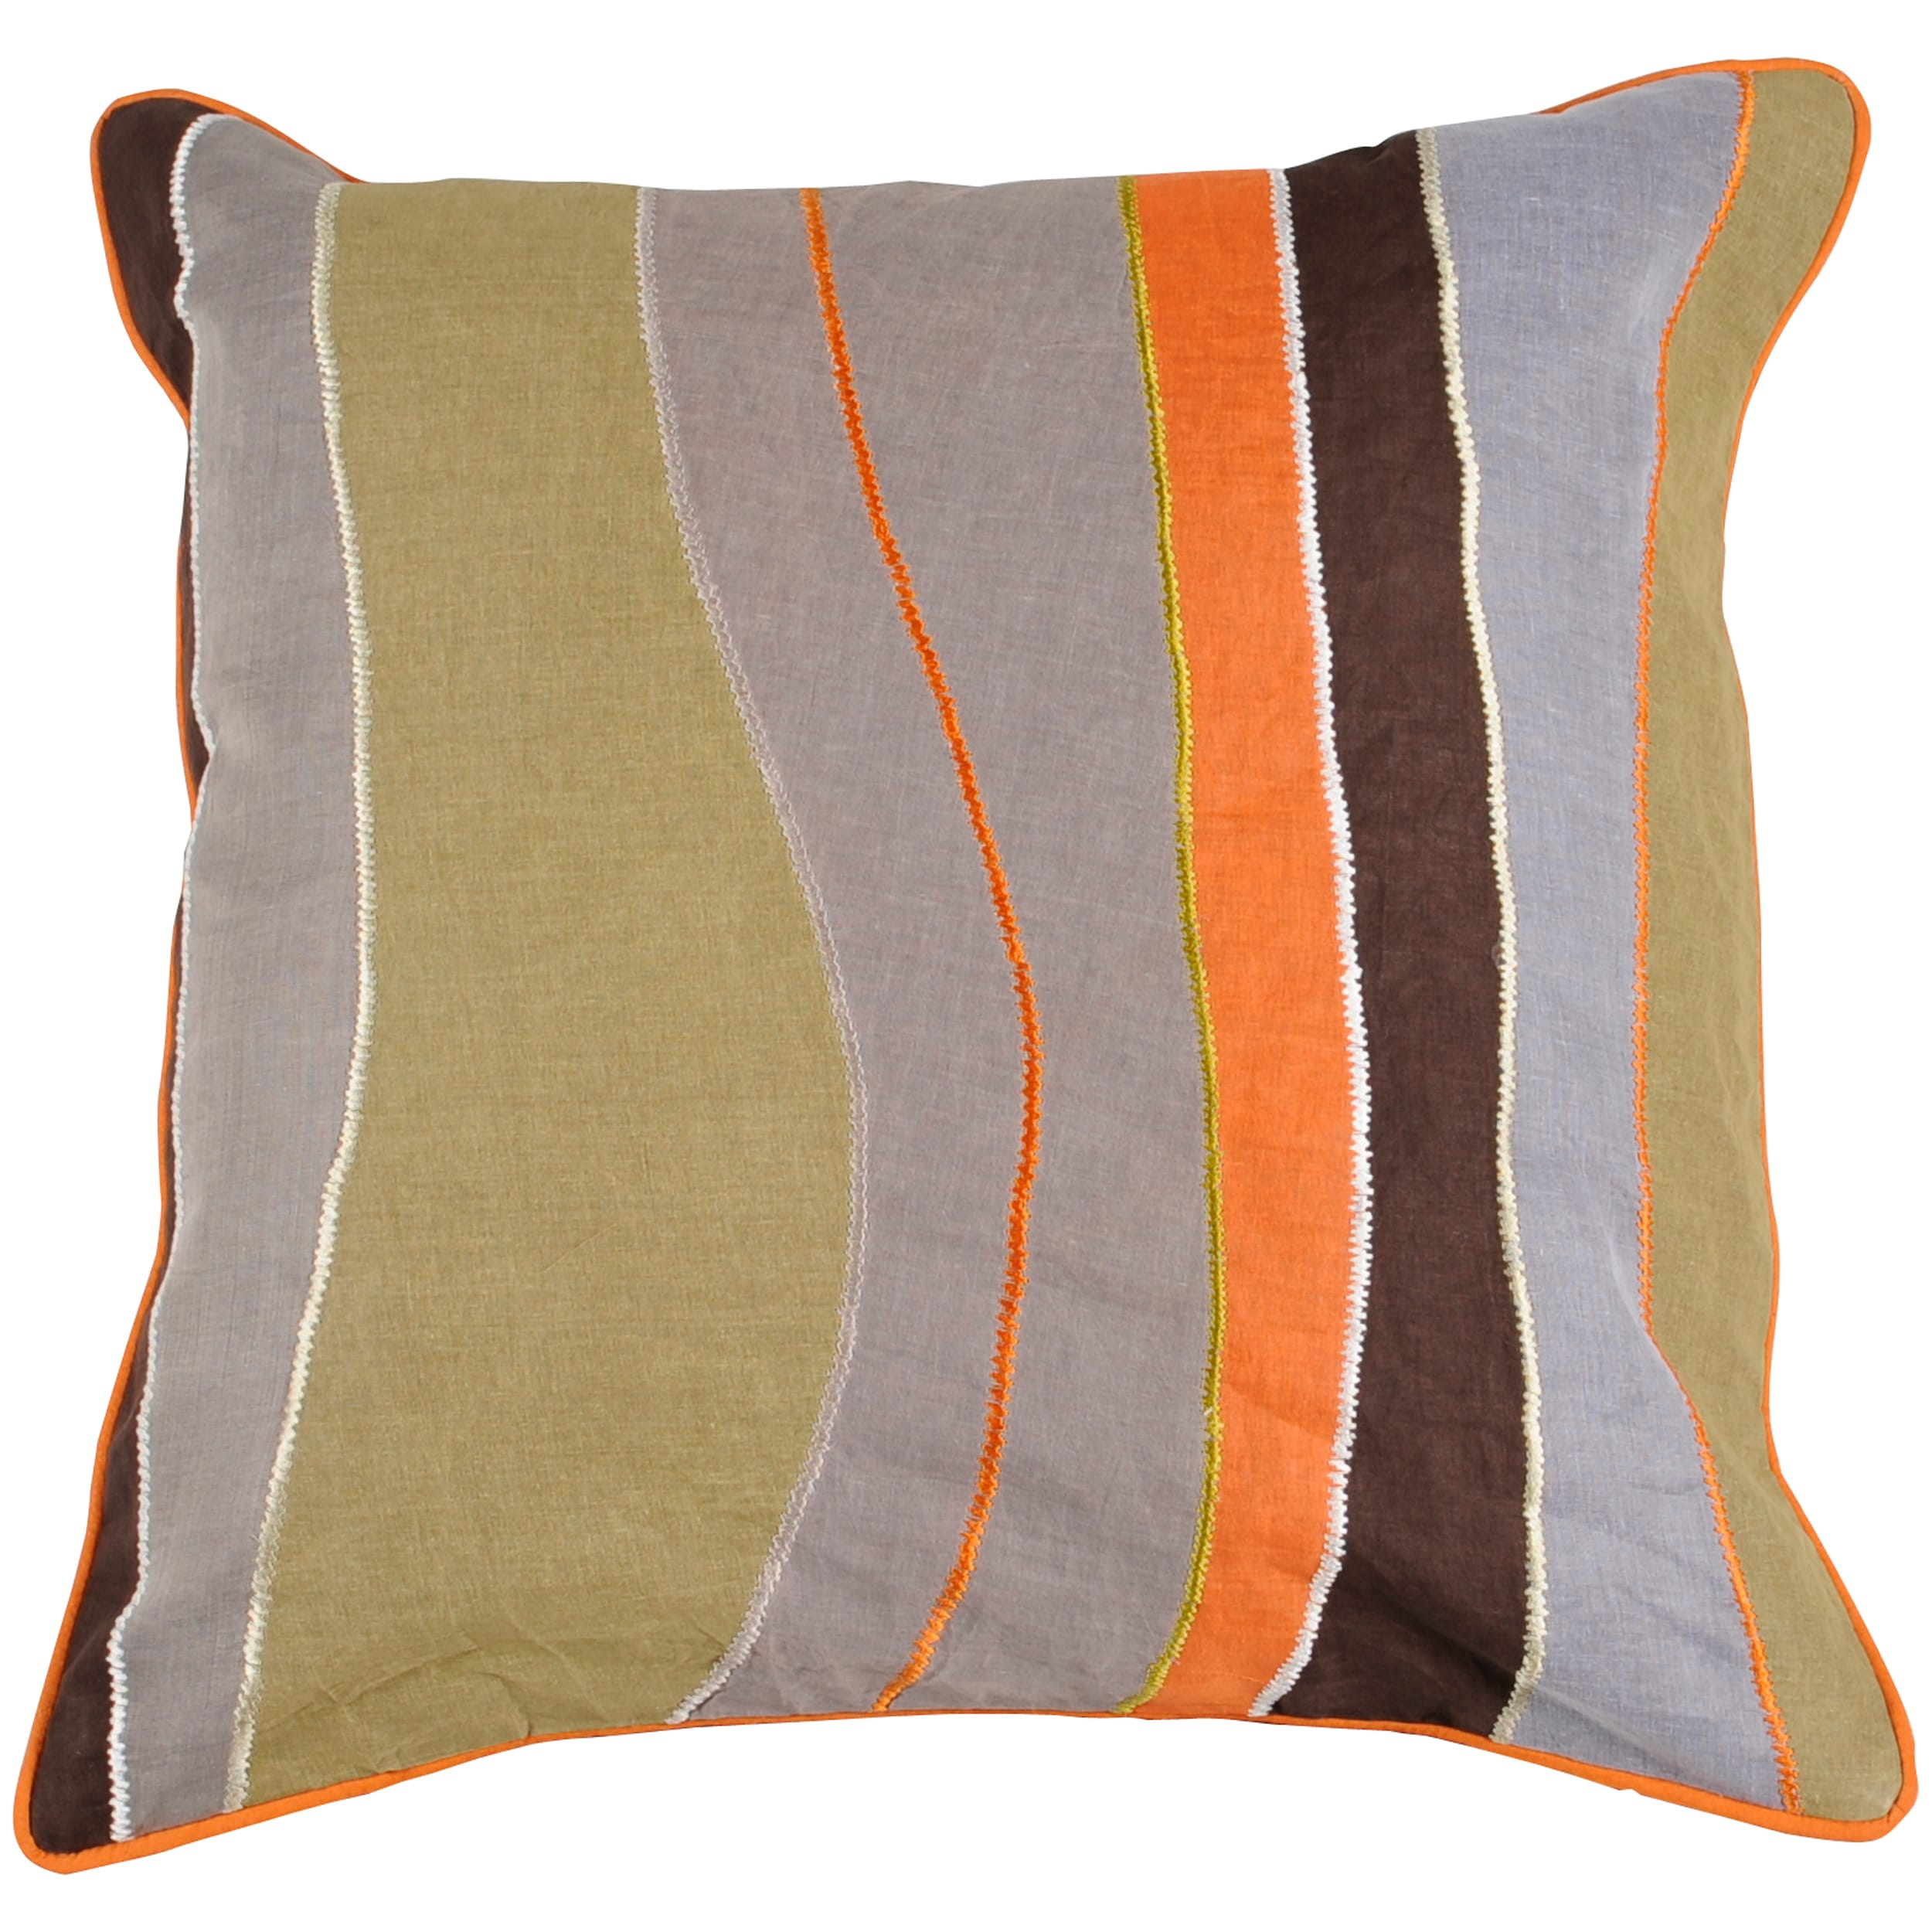 Pate Brown/ Sage/ Grey 22-inch Square Down Decorative Pillow